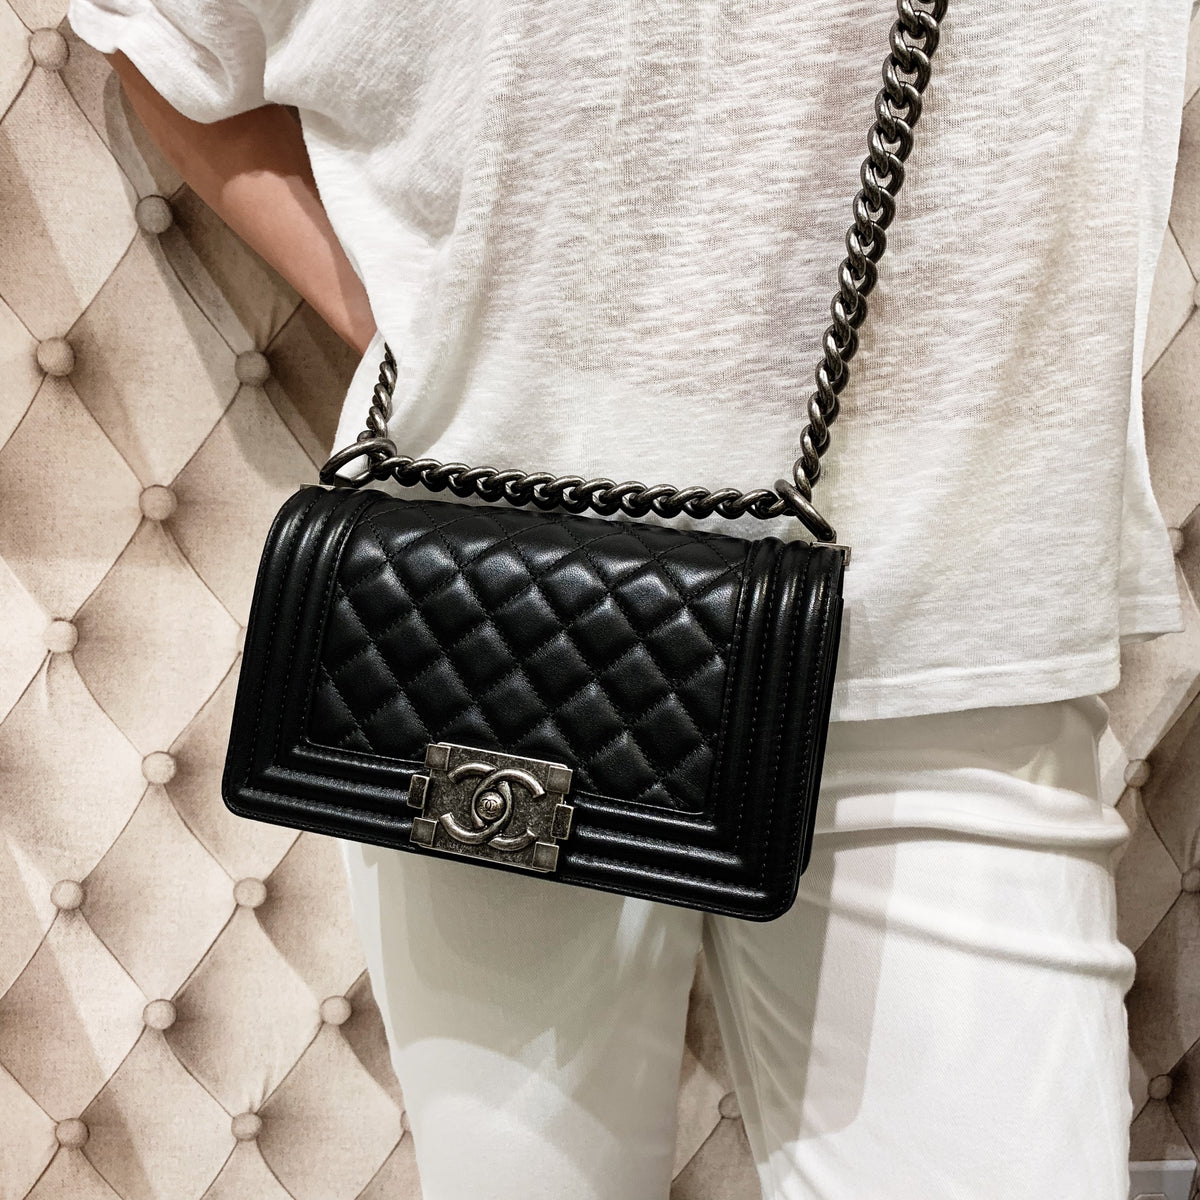 4ff23a3cb2c Chanel Small Boy Bag – Simply Chic Consignment